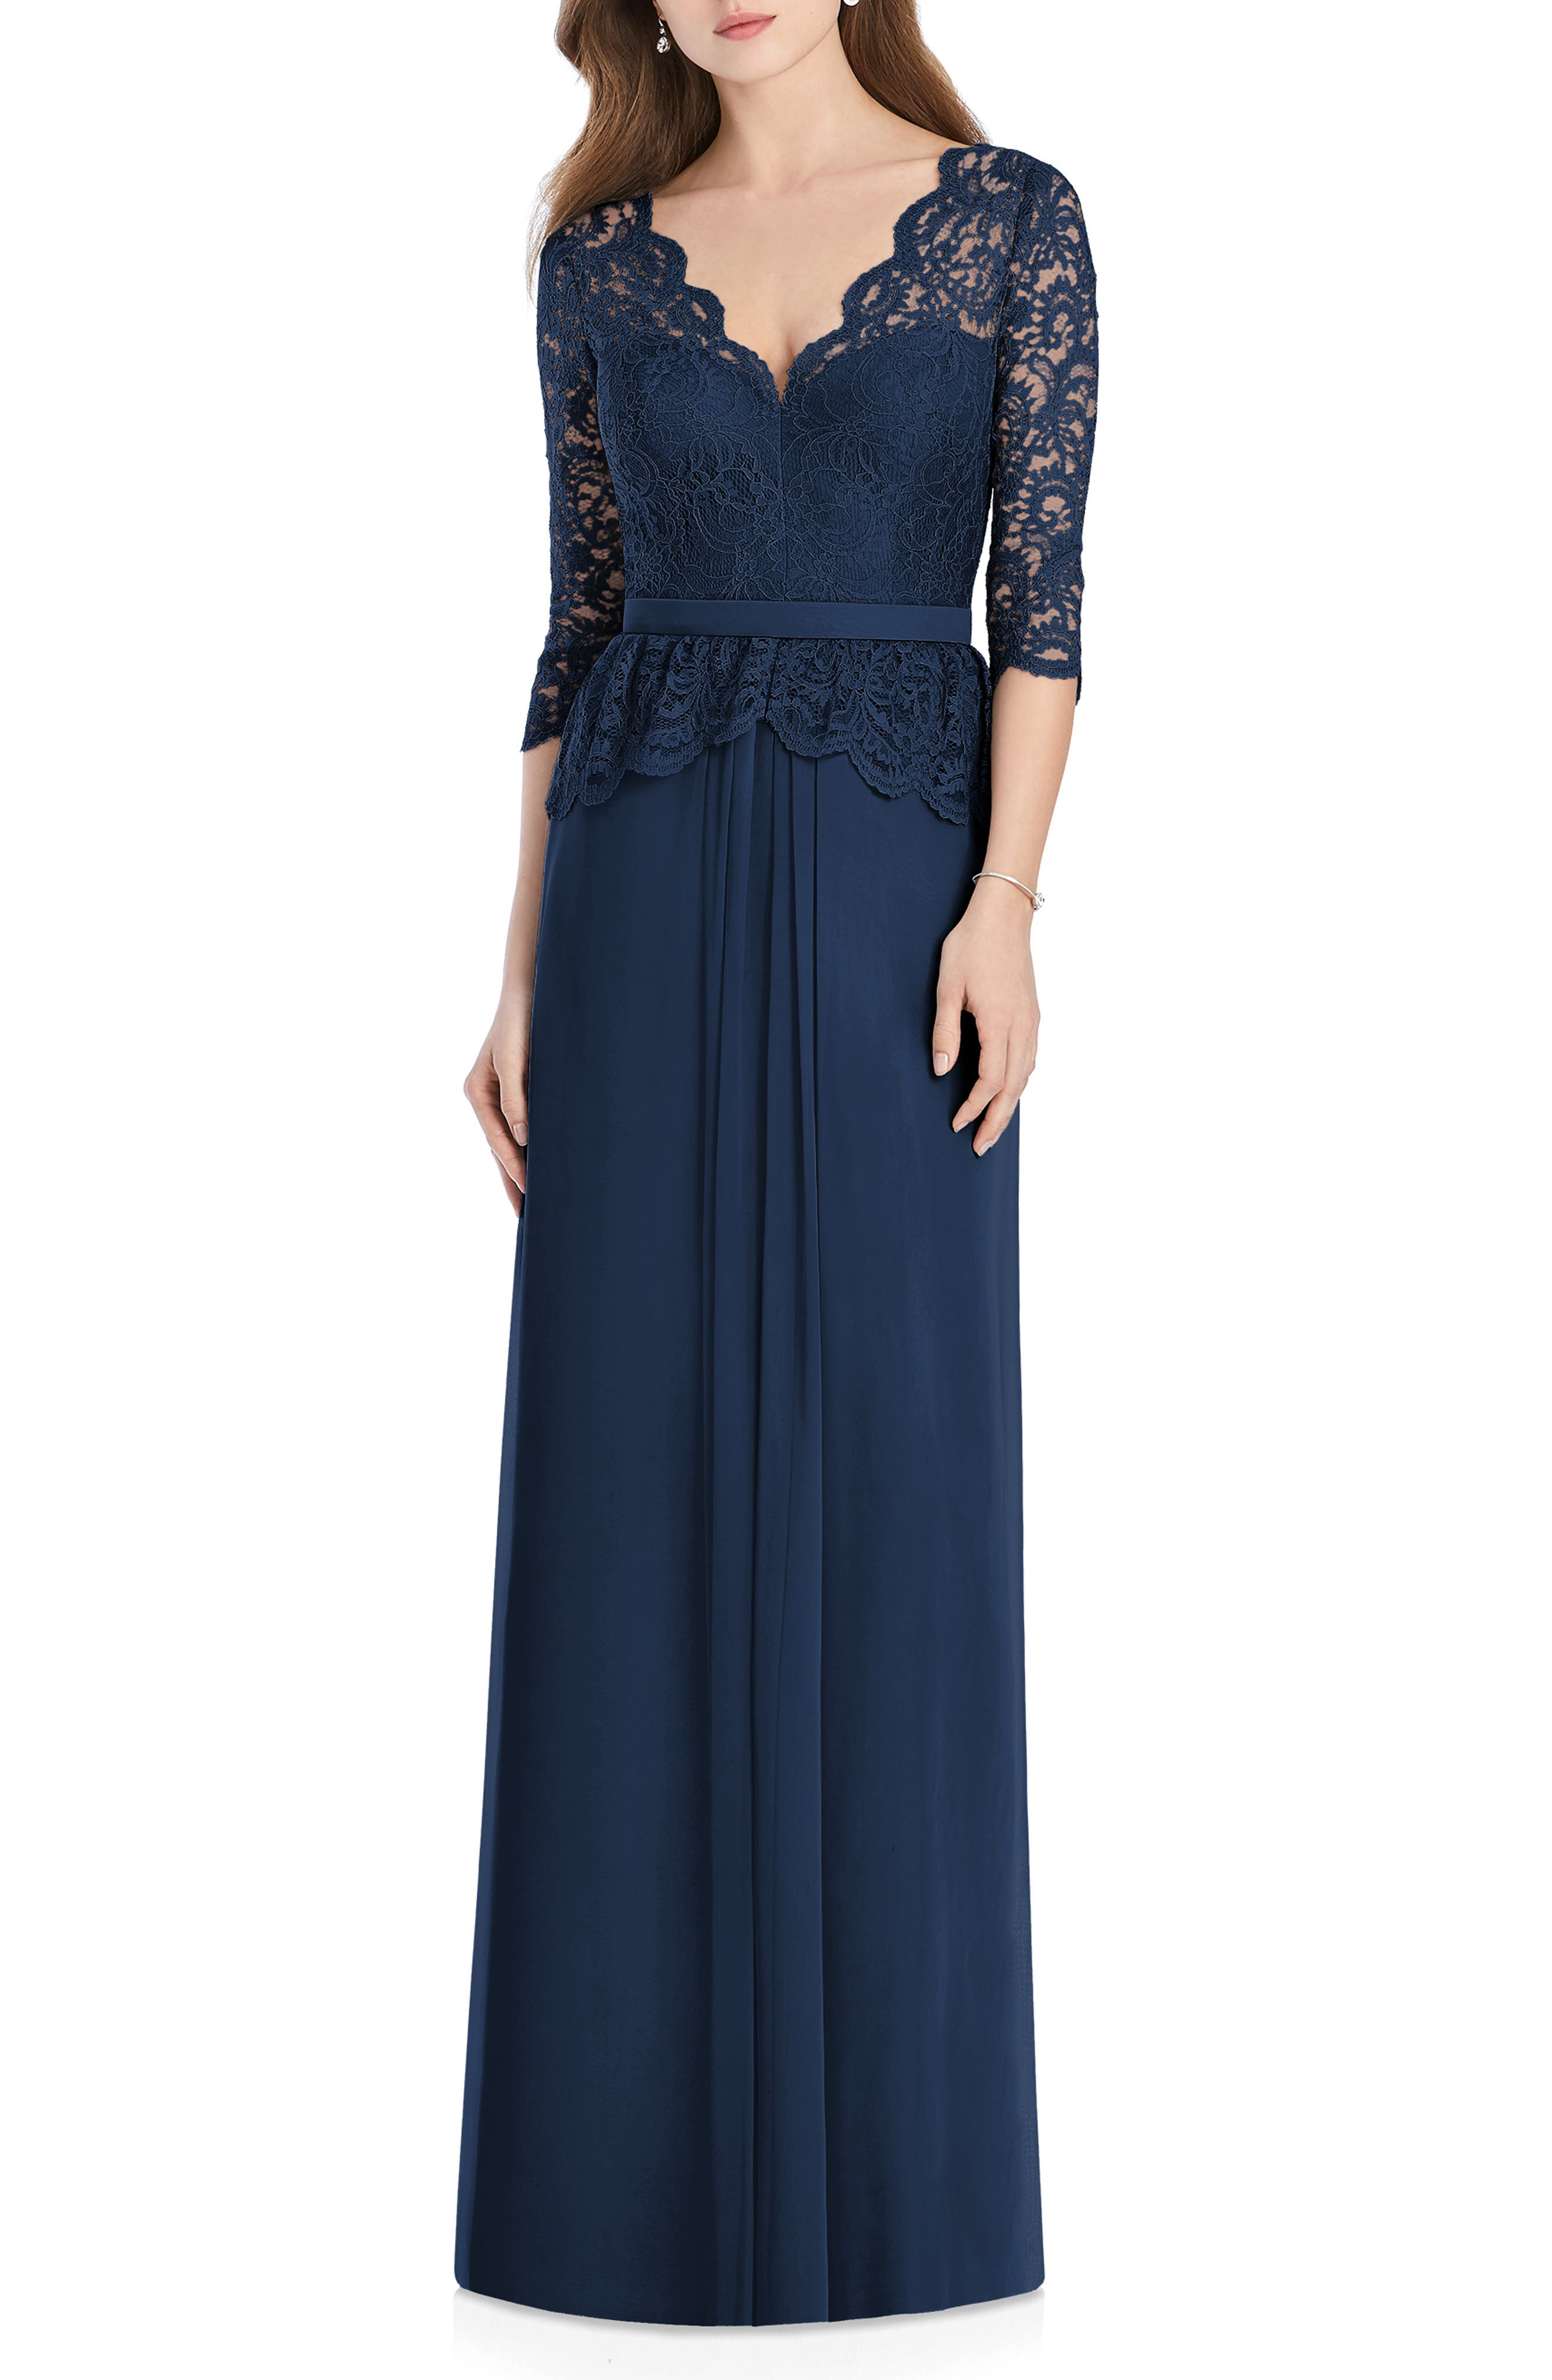 JENNY PACKHAM, Lux Chiffon Gown, Main thumbnail 1, color, MIDNIGHT